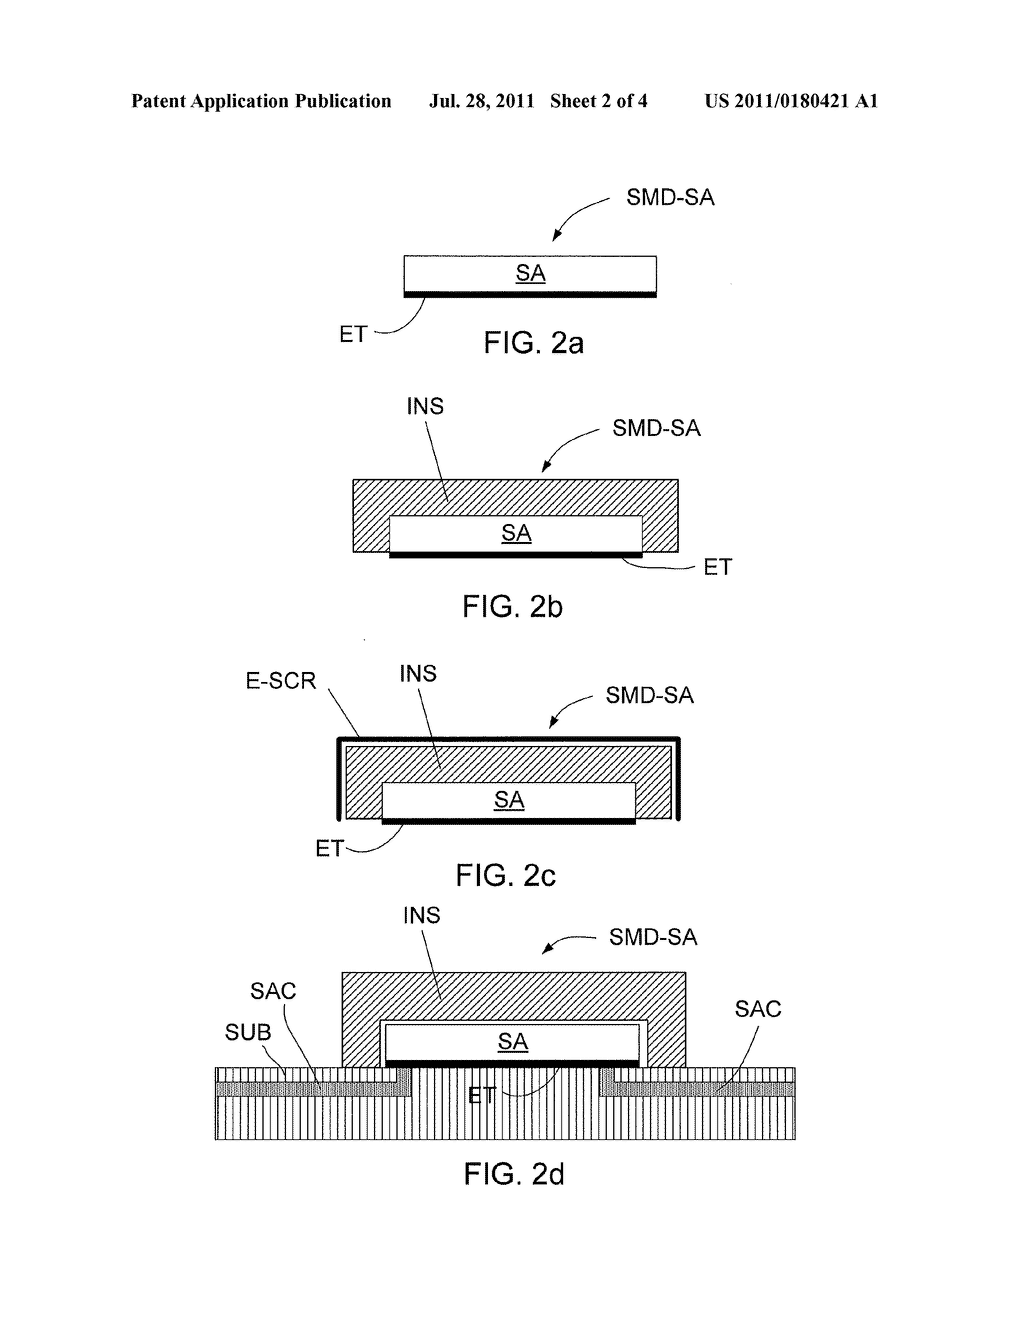 Use Of A Sacrificial Anode For Corrosion Protection Portable Qmark Heater Wiring Diagram Device Eg Hearing Aid Schematic And Image 03